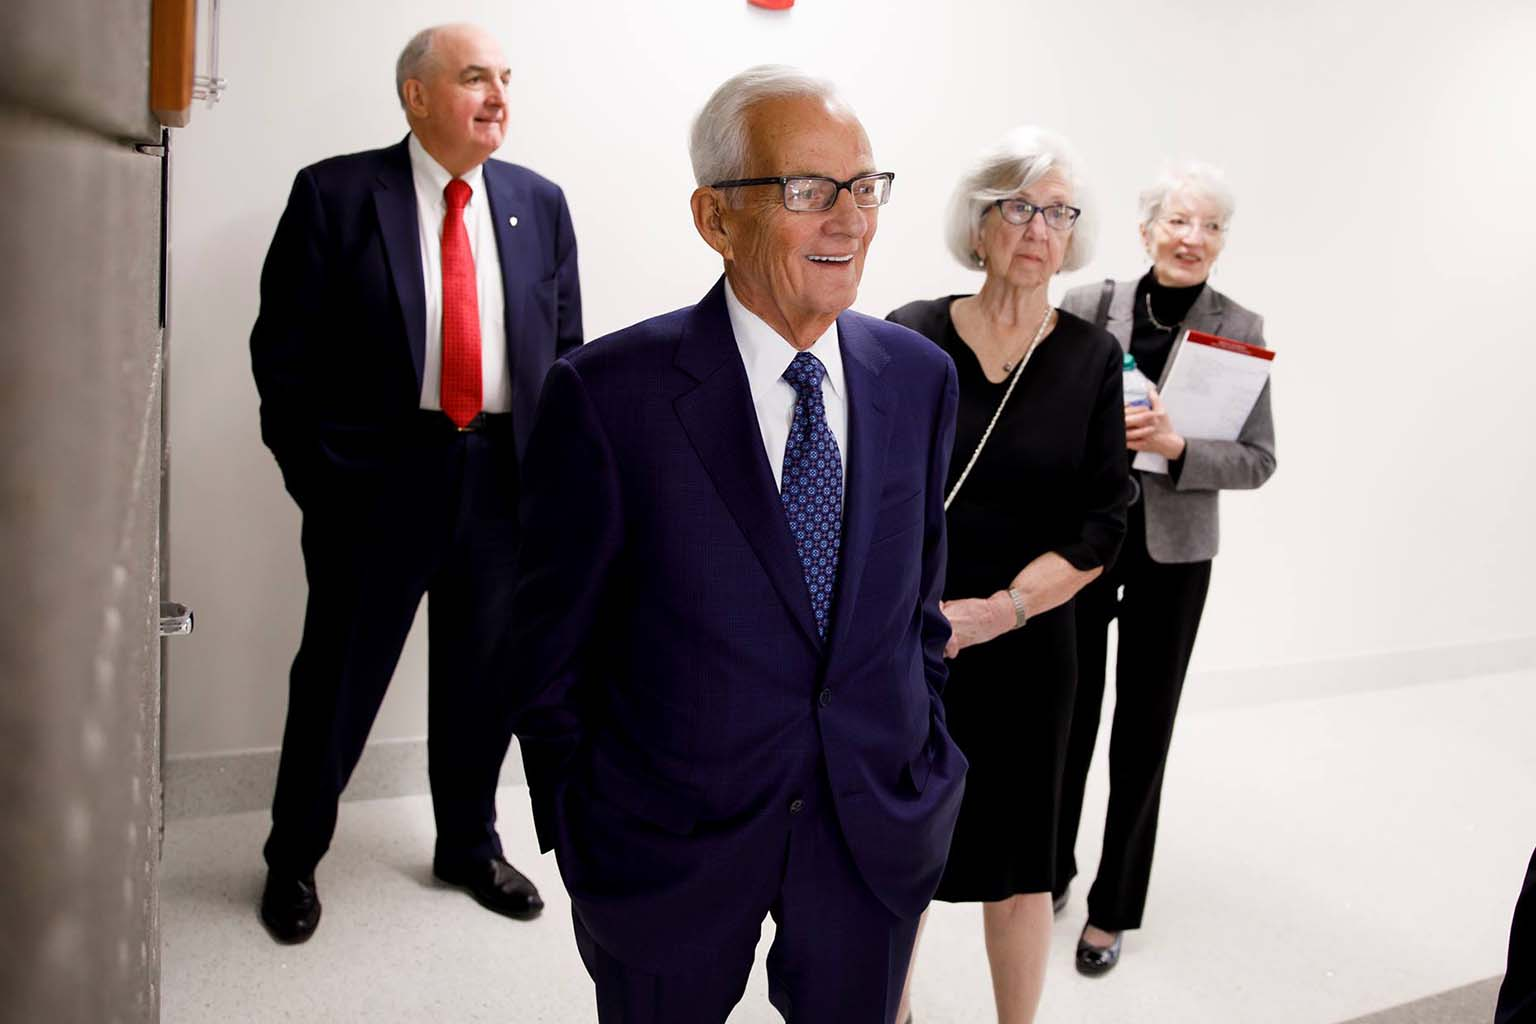 Paul O'Neill walks in the O'Neill Graduate Center with his wife, Nancy, and President Michael A. McRobbie and Prof. Kirsten Gronbjerg.